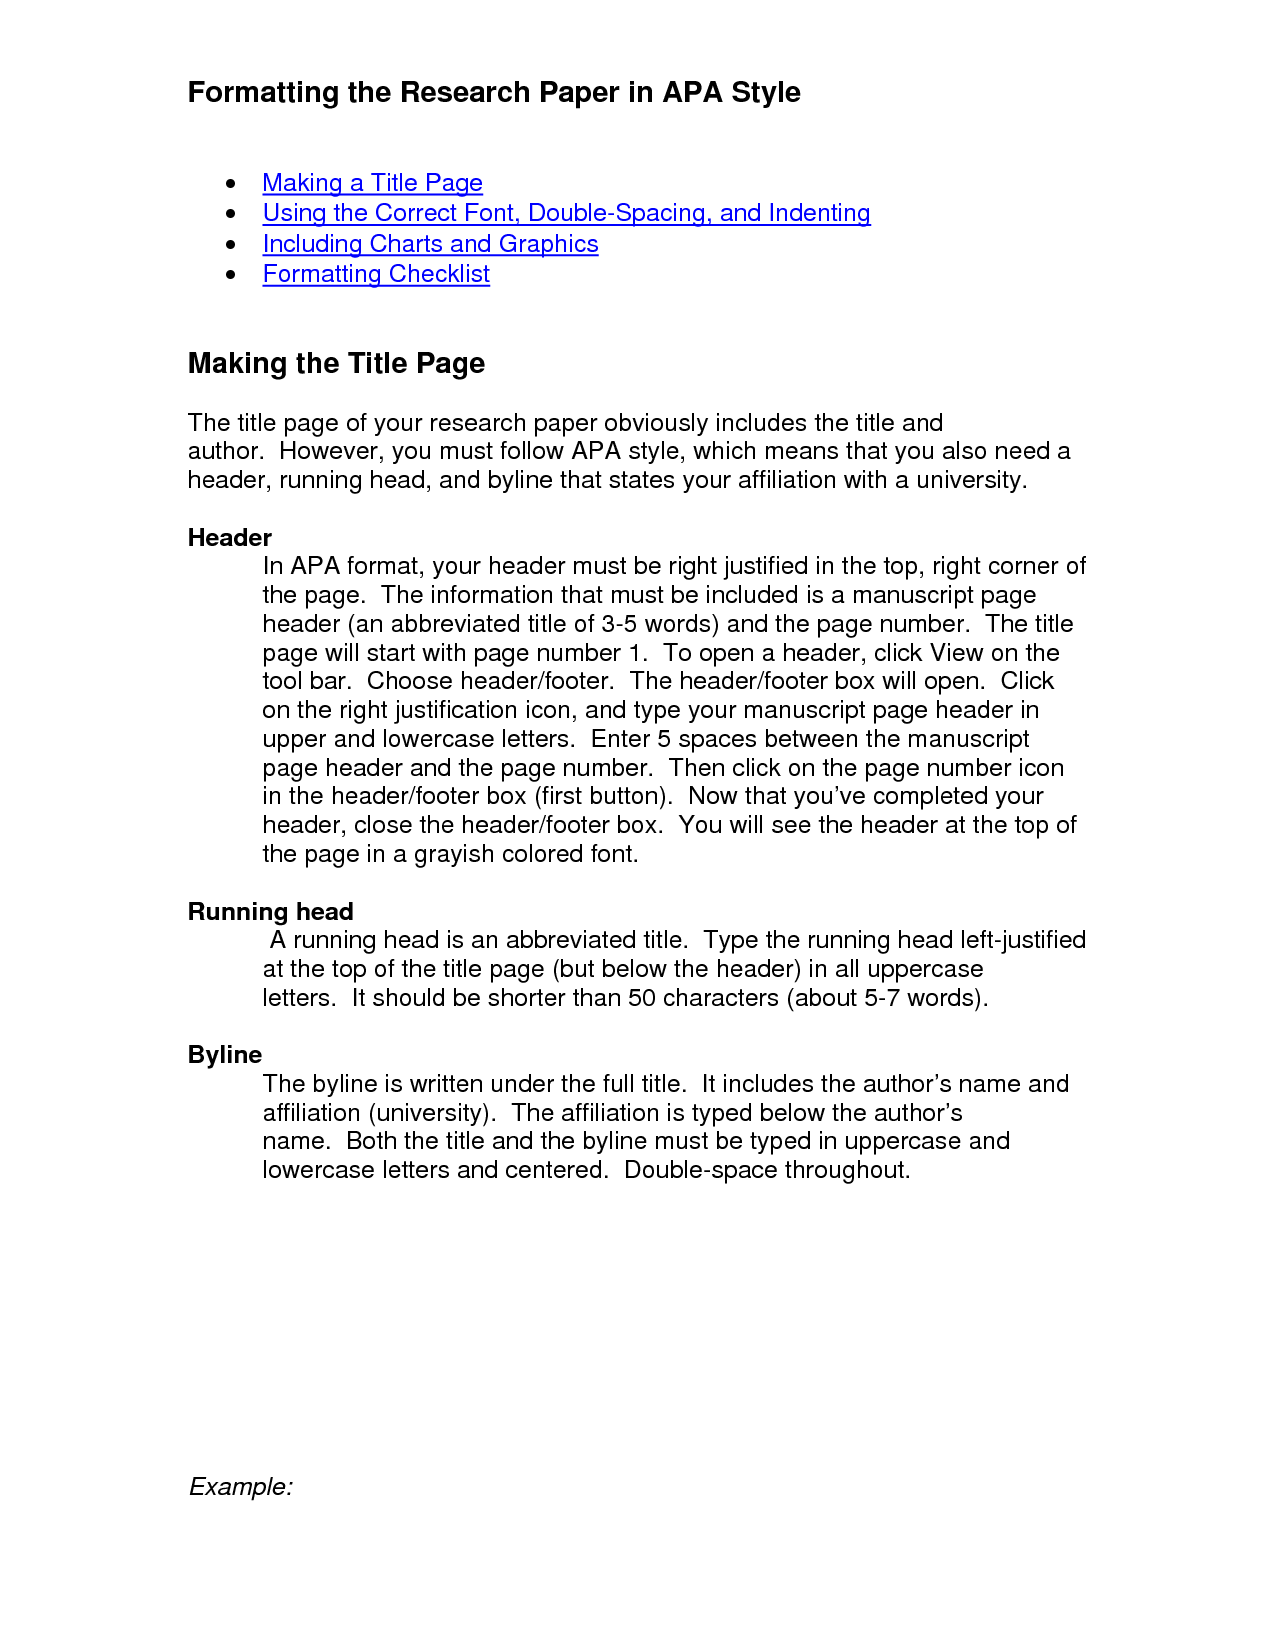 006 Format For Research Paper Apa Style Fotolipcom Rich Image And Wallpaper Template L Imposing Layout Of A Sample Argumentative Formatting Youtube Full